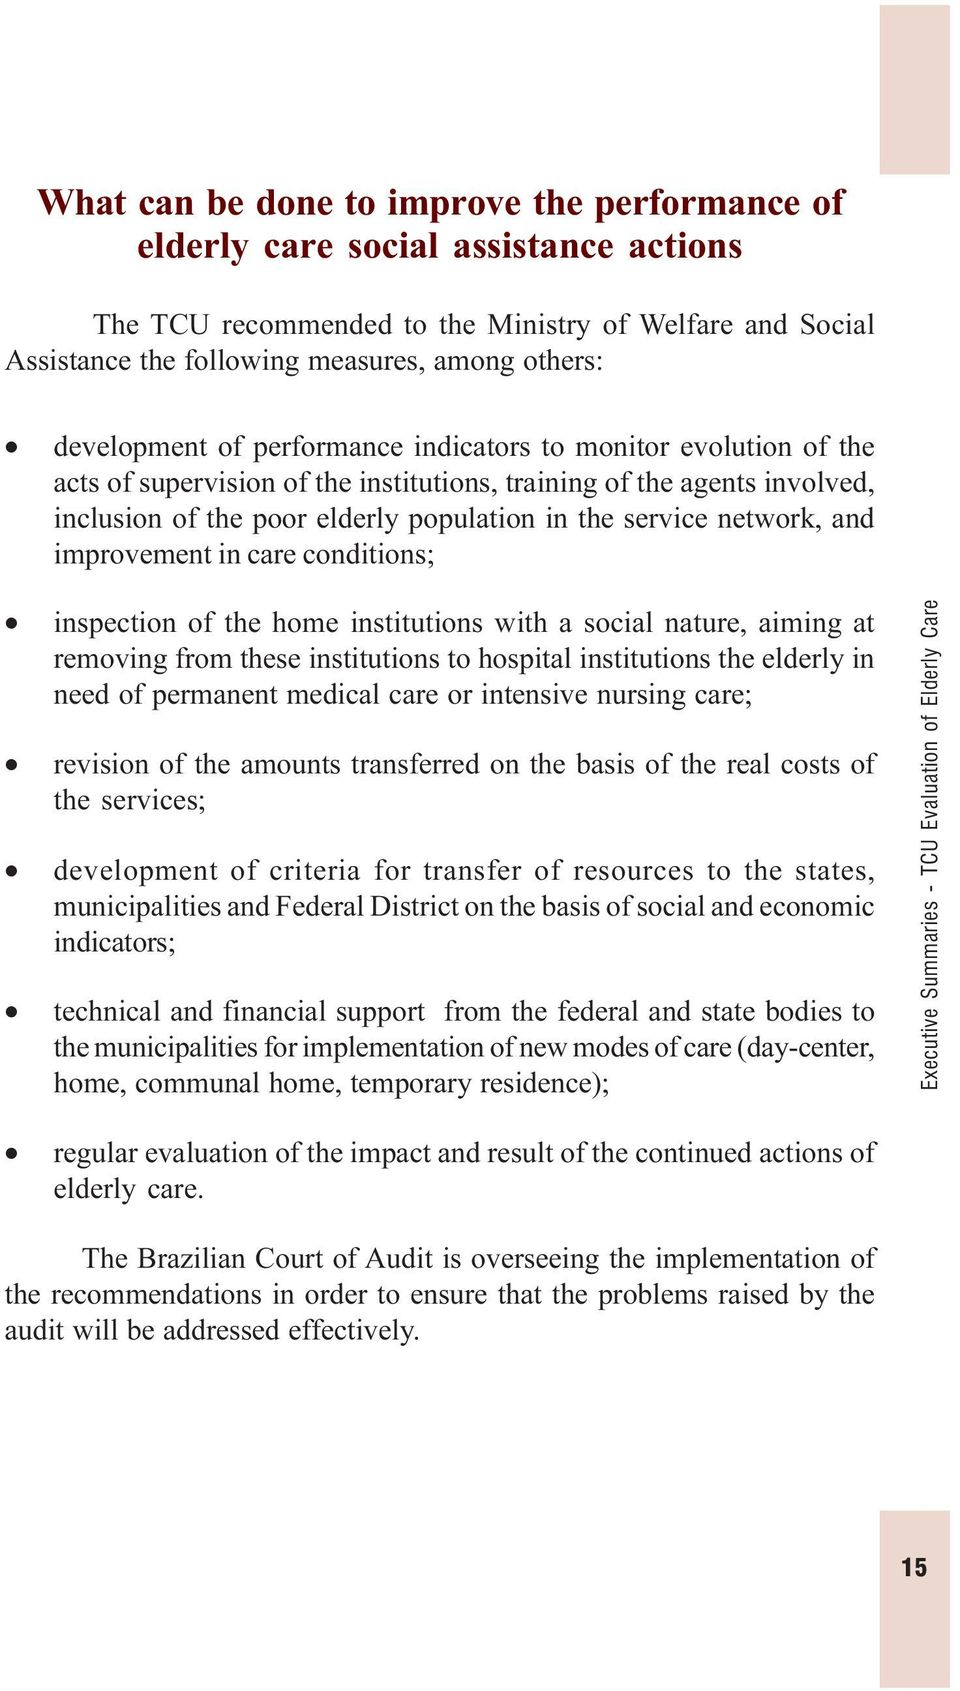 network, and improvement in care conditions; inspection of the home institutions with a social nature, aiming at removing from these institutions to hospital institutions the elderly in need of